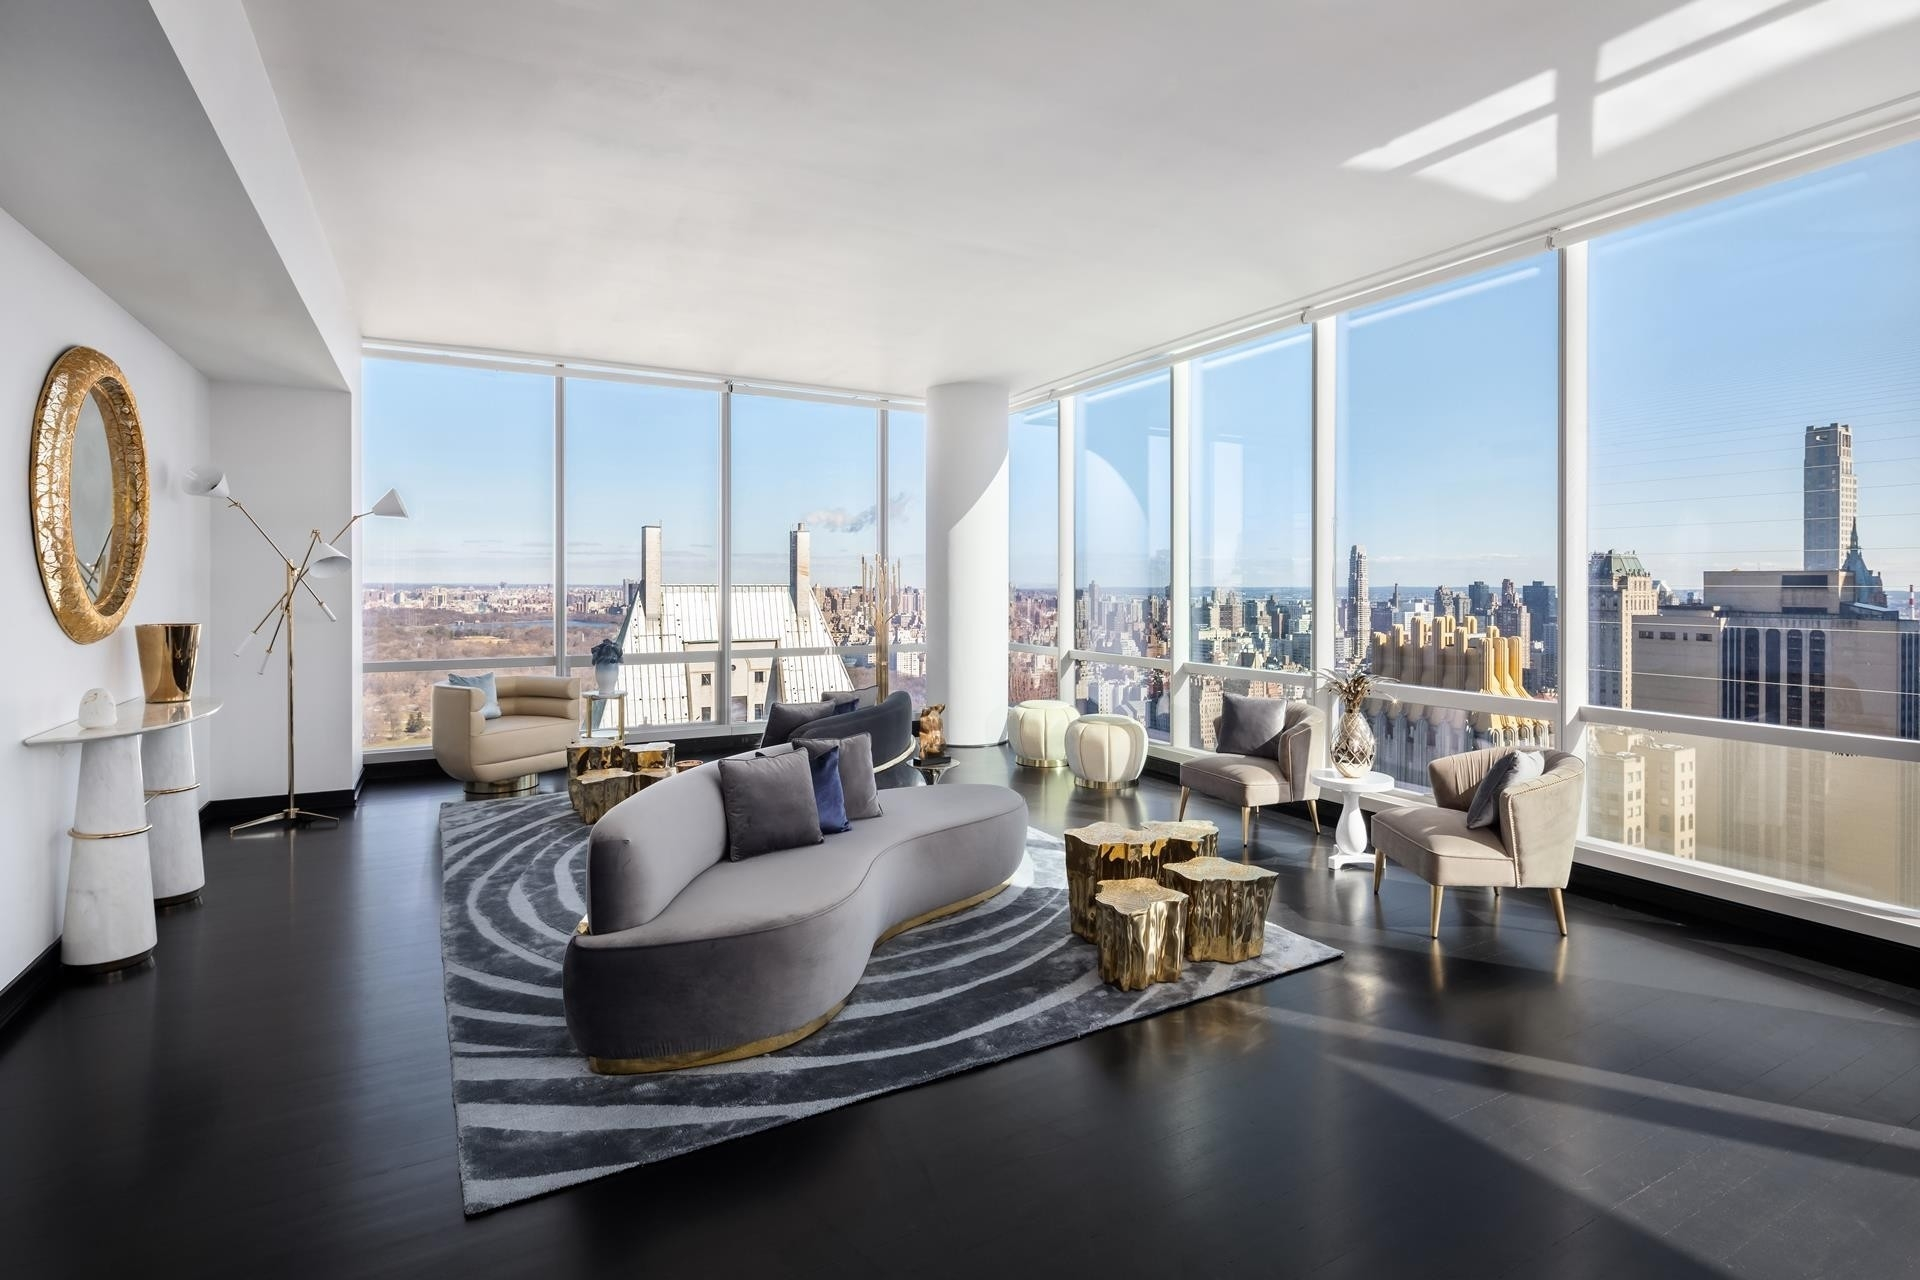 Property en One57, 157 West 57th St, 45C Midtown West, New York, NY 10019